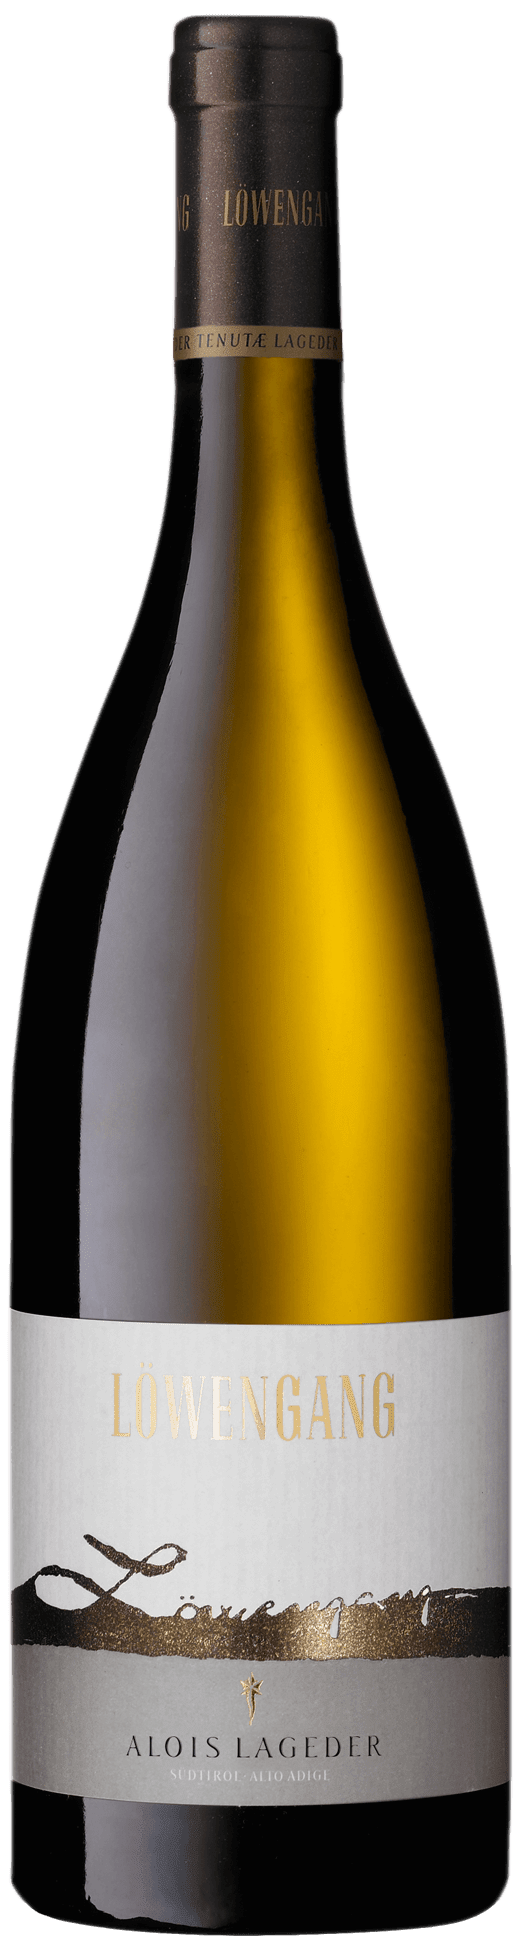 Lowengang Chardonnay Alois Lageder